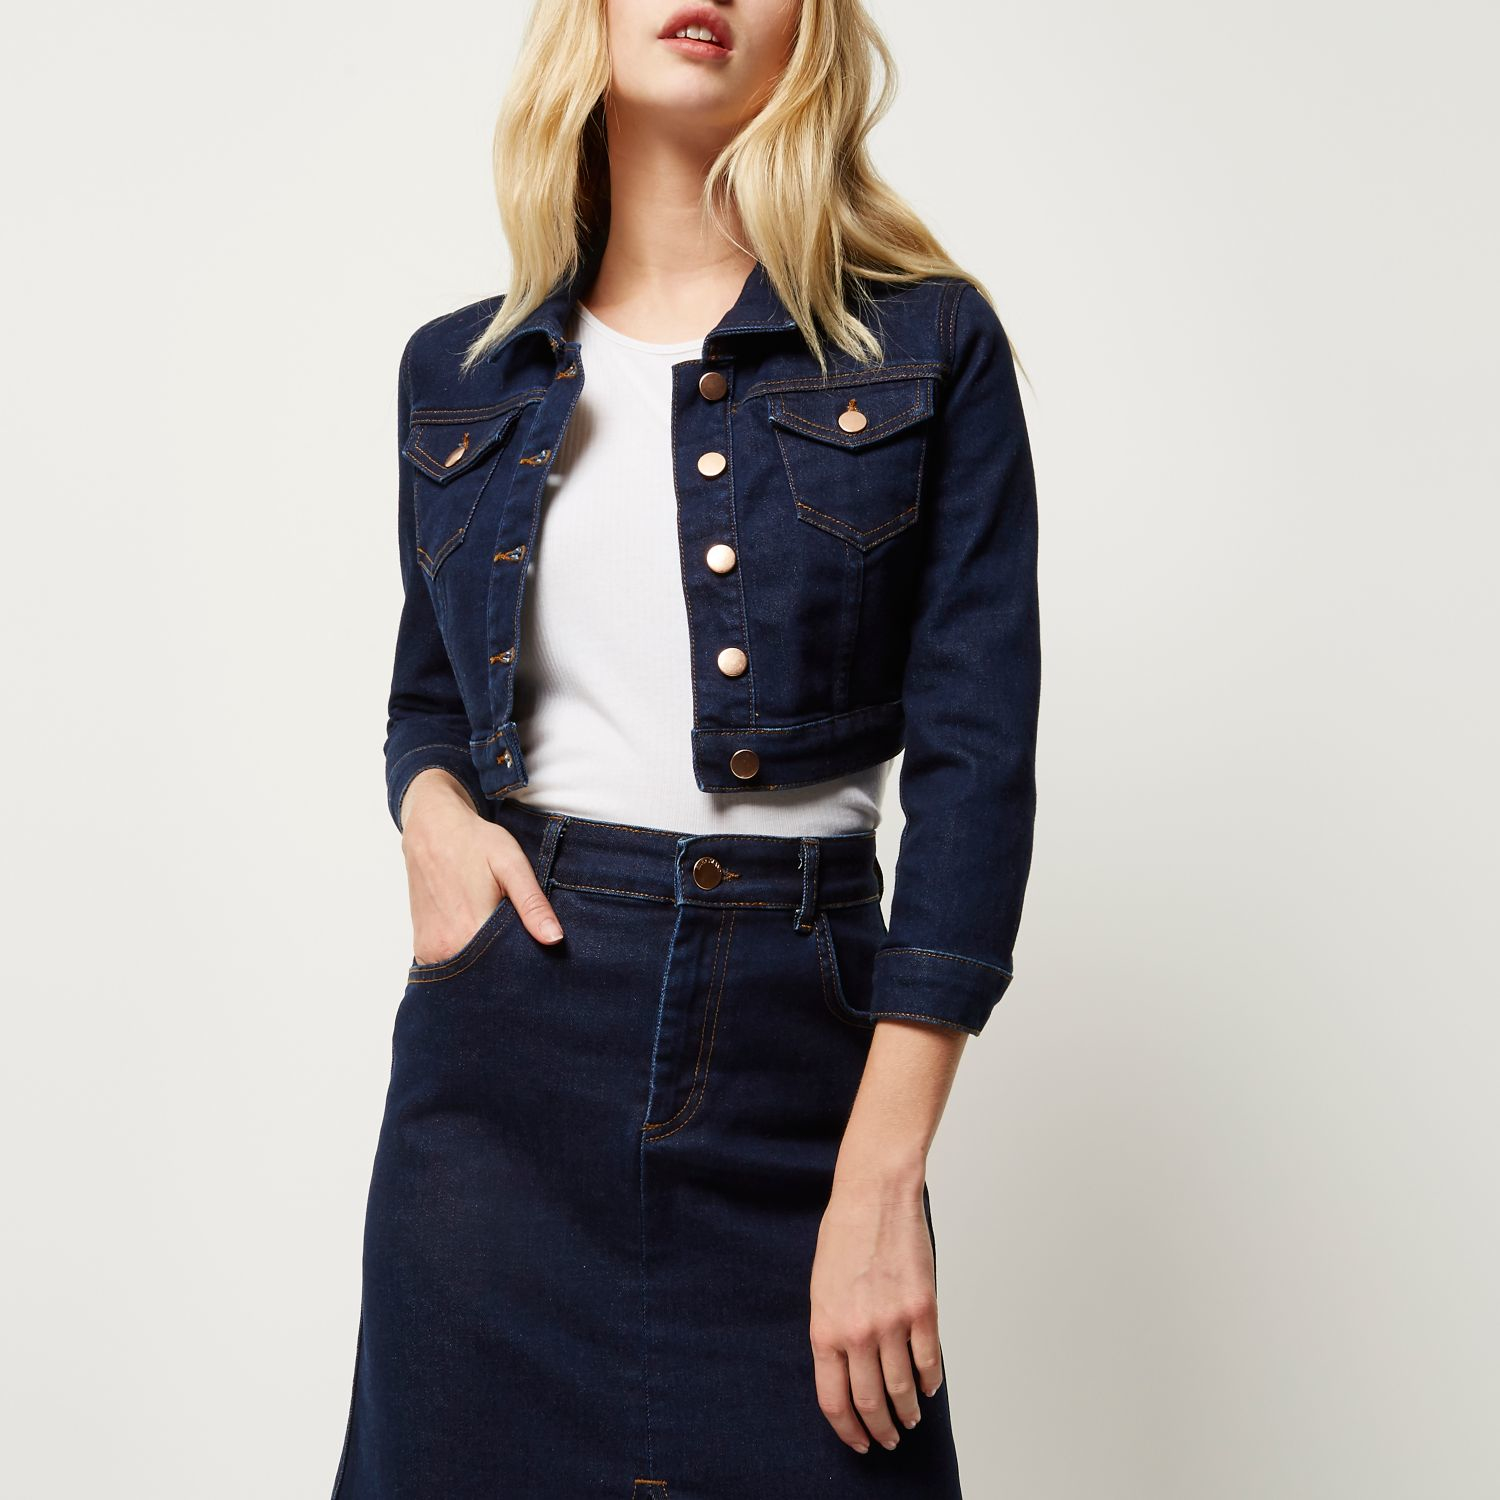 Cropped Dark Denim Jacket - Best Jacket 2017